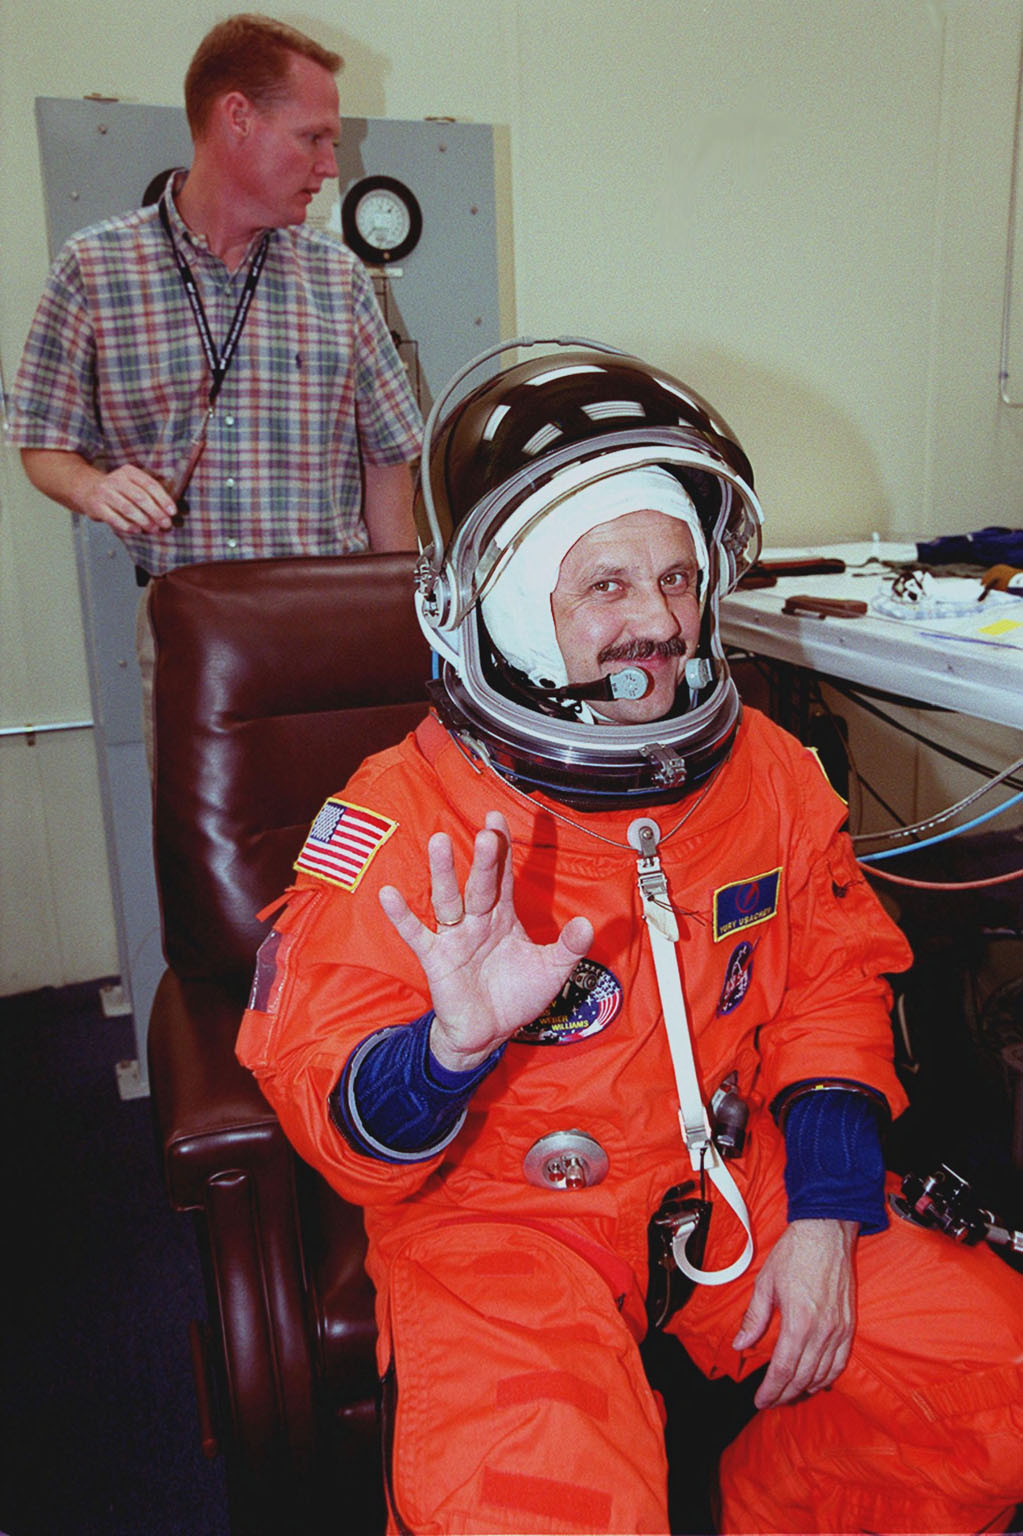 During pre-launch preparations in the Operations and Checkout Building, STS-101 Mission Specialist Yury Usachev of Russia waves while waiting for his launch and entry suit to be checked. Mission STS-101 will take the crew to the International Space Station to deliver logistics and supplies, plus prepare the Station for the arrival of the Zvezda Service Module, expected to be launched by Russia in July 2000. The crew will conduct one space walk to perform maintenance on the Space Station as well. This will be the third assembly flight for the Space Station. Launch is targeted for April 24 at about 4:15 p.m. EDT from Launch Pad 39A